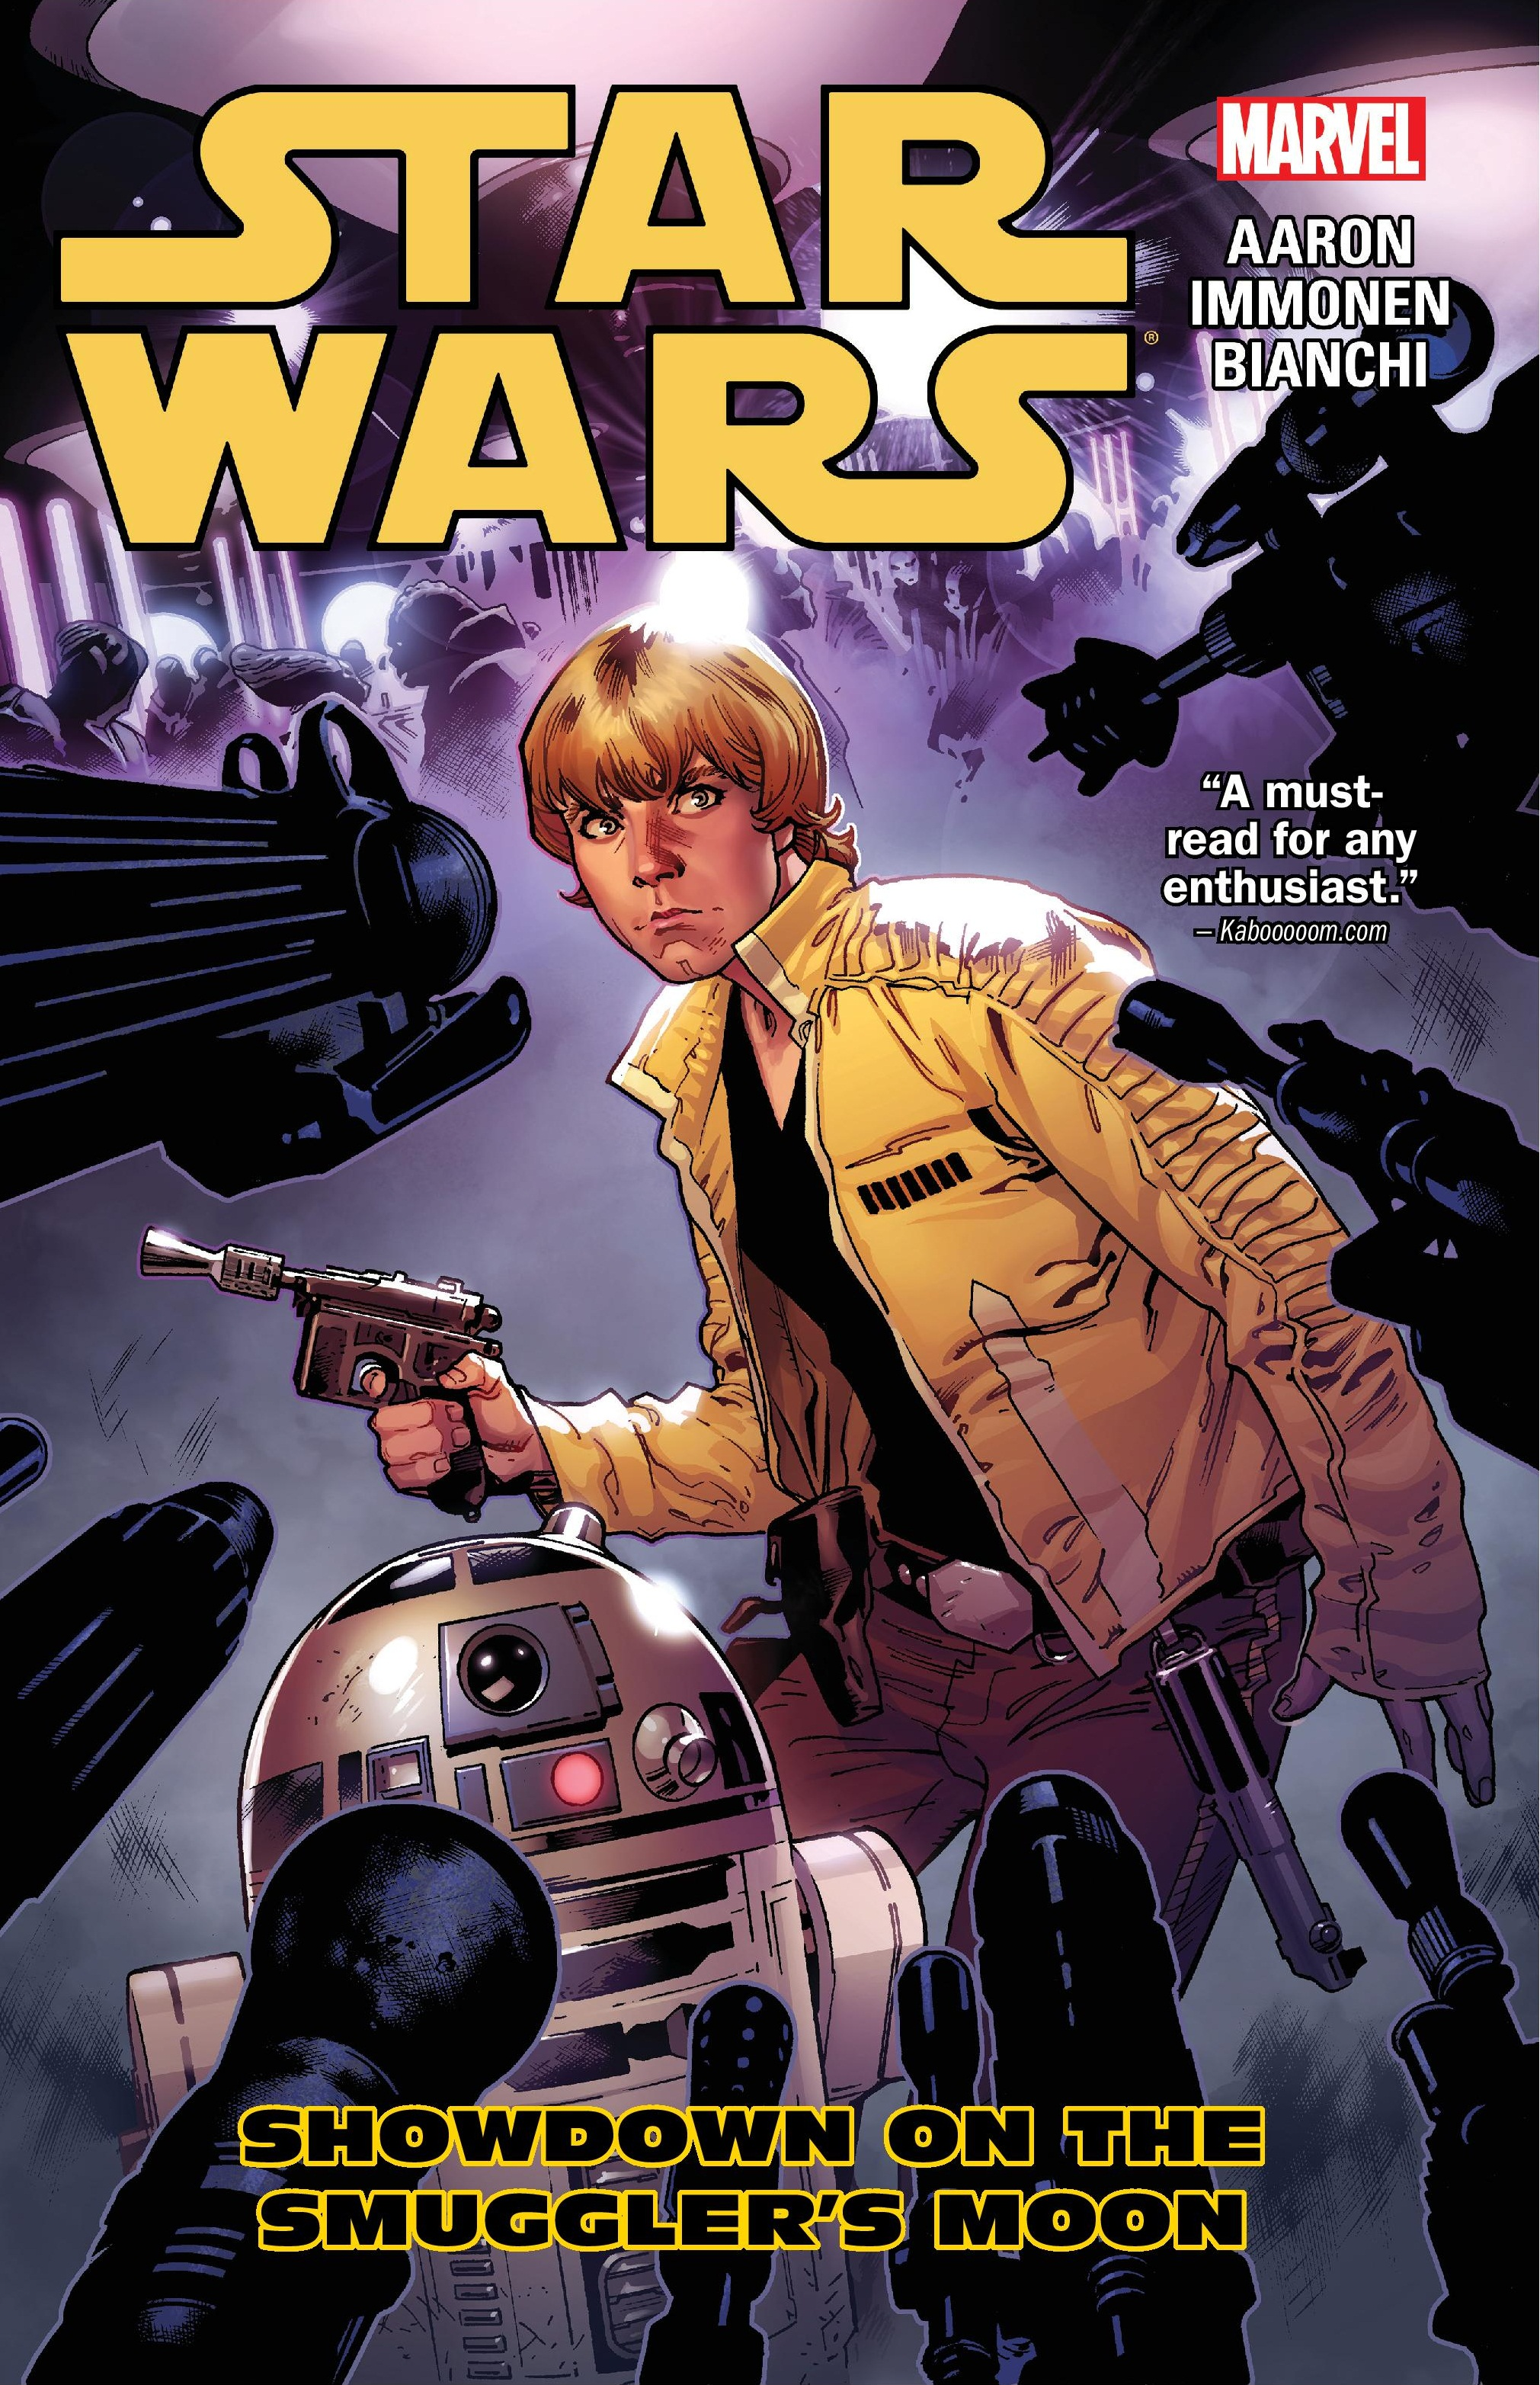 Star Wars Vol. 2: Showdown on the Smuggler's Moon (Trade Paperback)